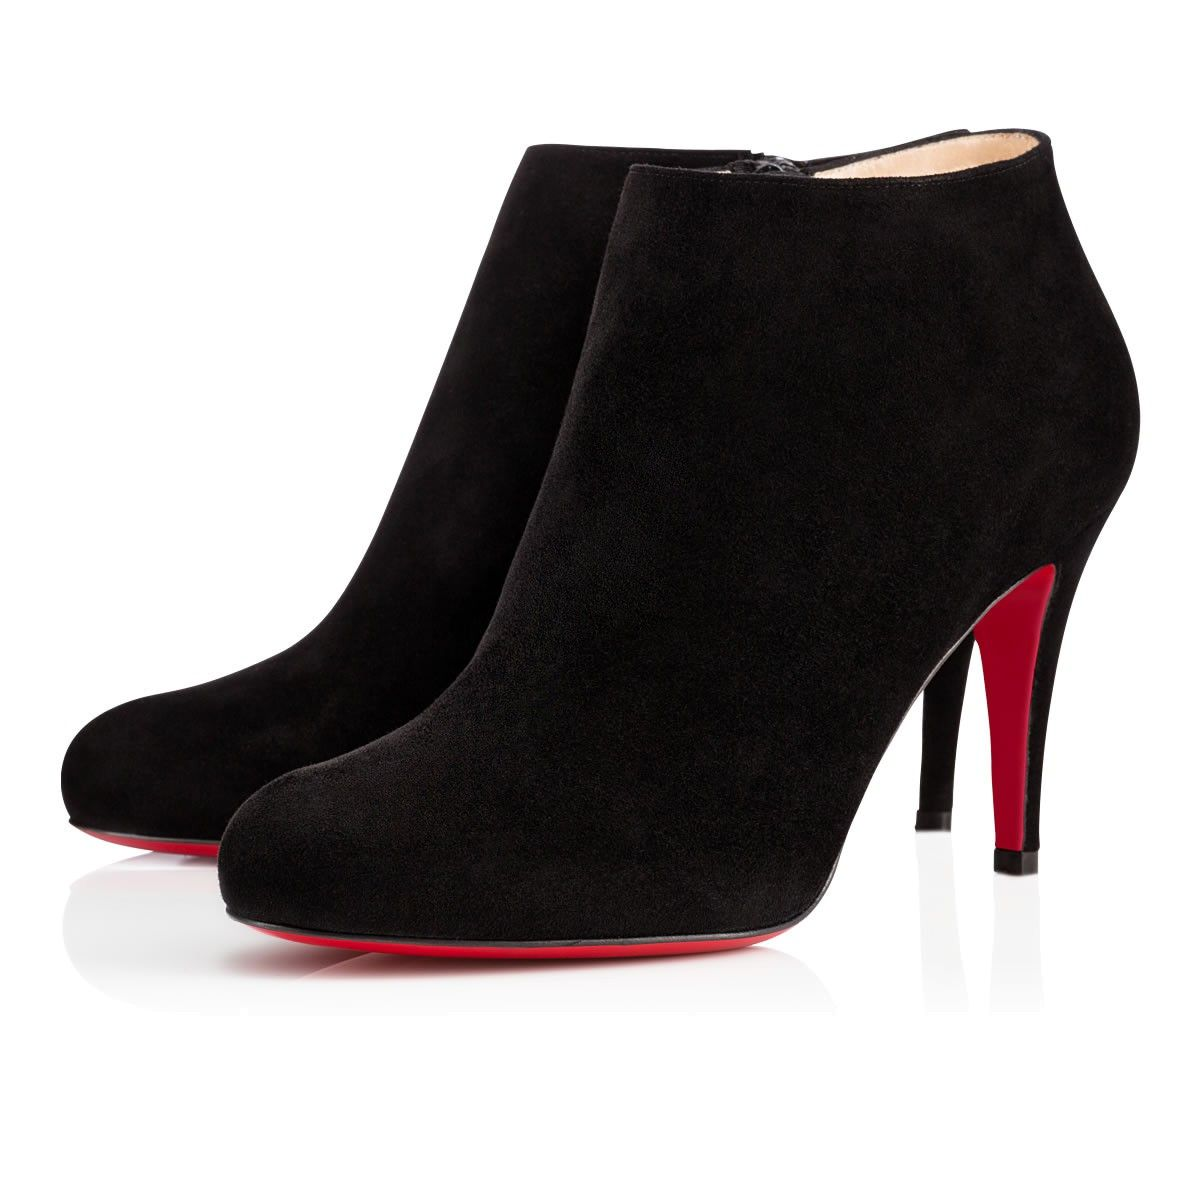 Chaussures femme - Belle Suede - Christian Louboutin